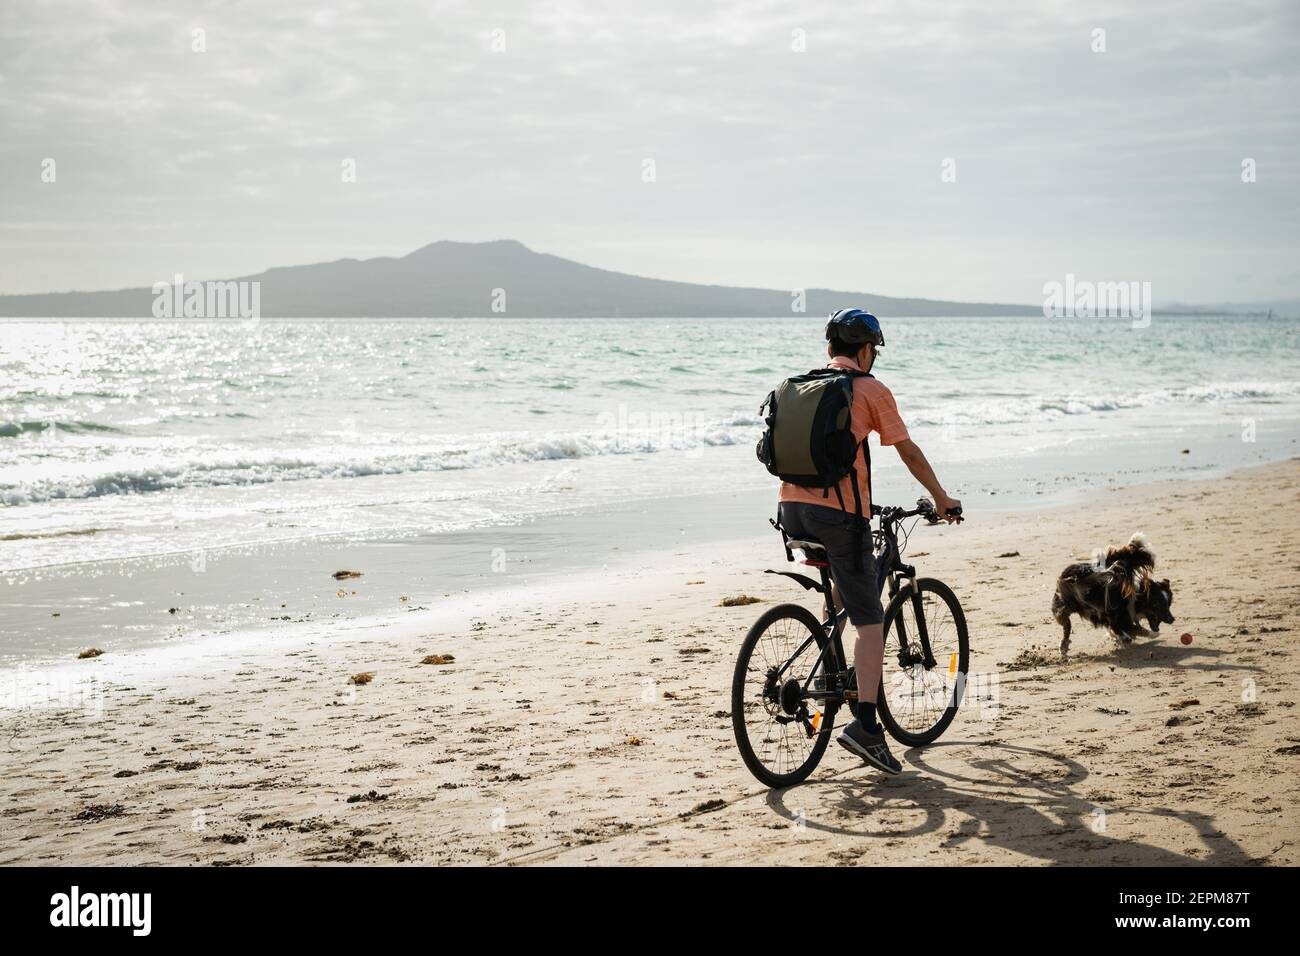 A man cycling on the Milford beach with Rangitoto Island in the distance. A dog chasing the ball suddenly running in front of the cyclist. Stock Photo